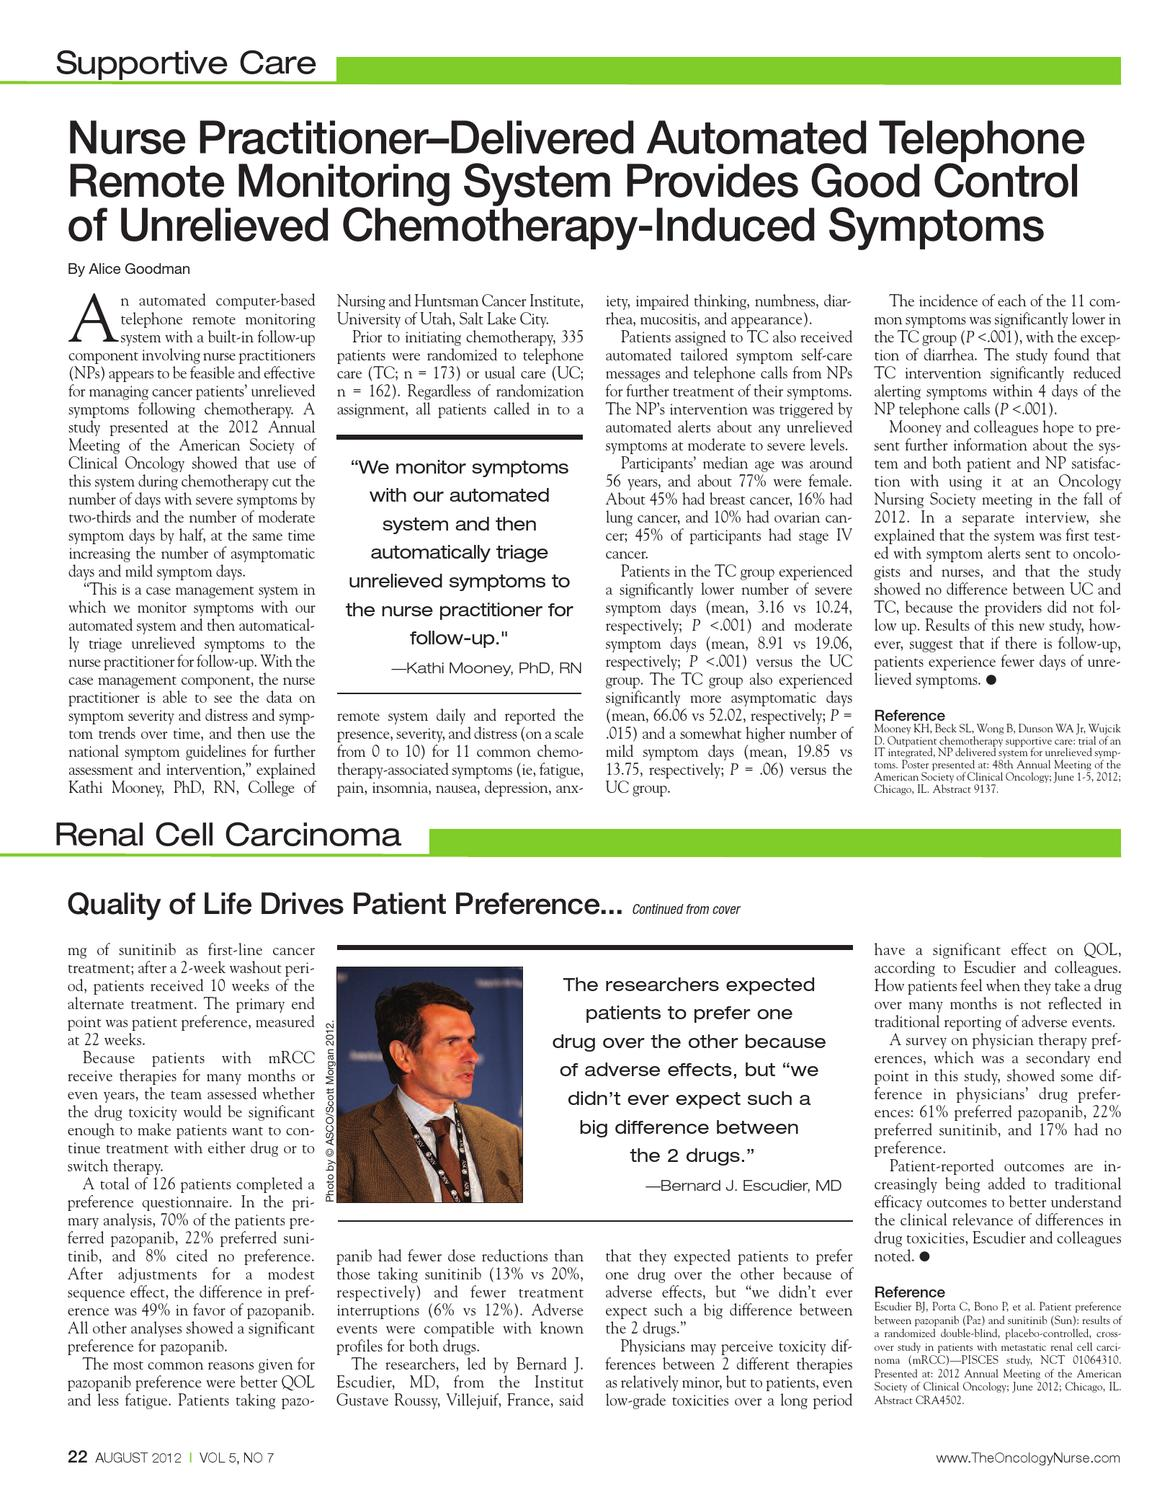 August 2012, VOl 5, NO 7 by The Oncology Nurse - issuu